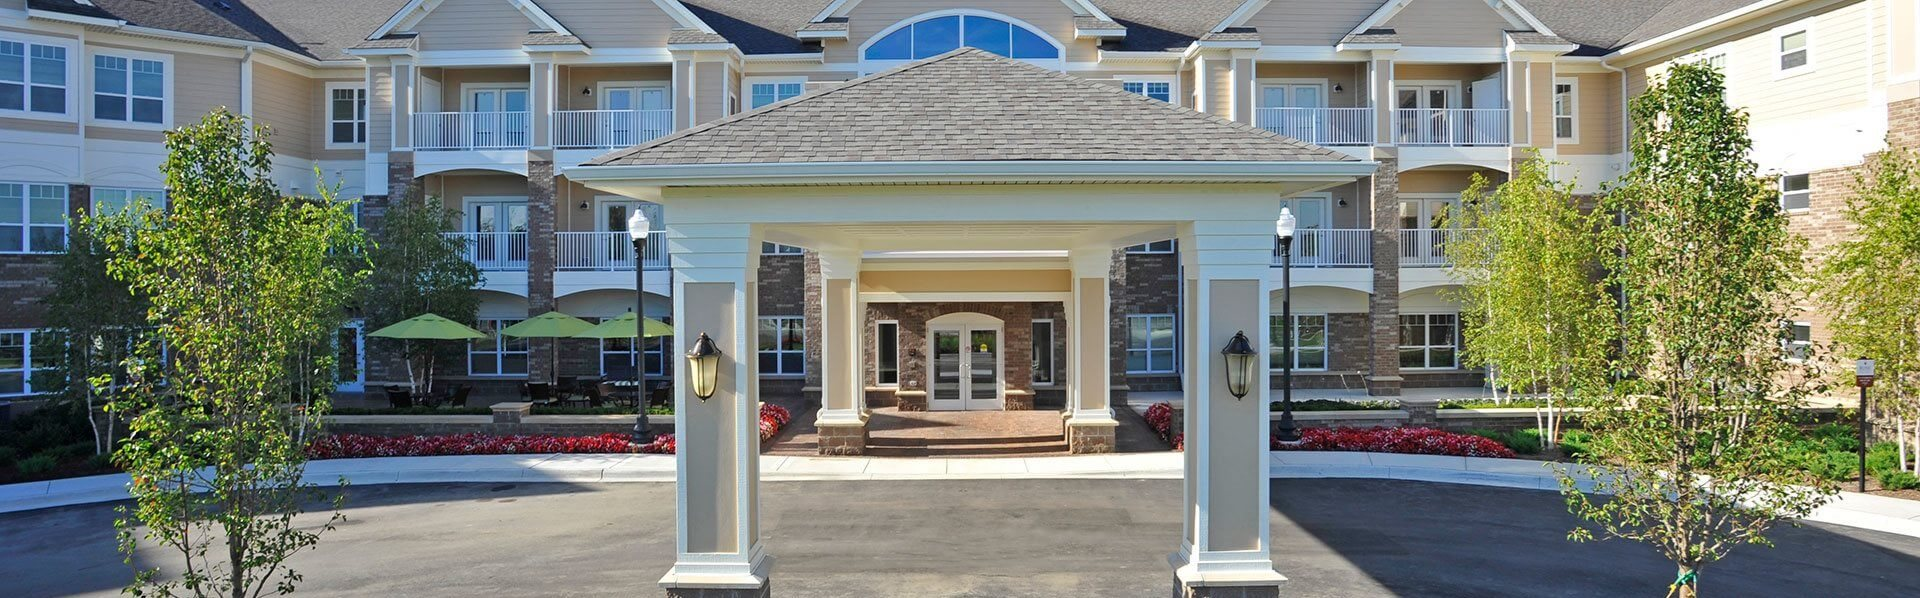 Scheduled Transportation Available at Rose Senior Living – Clinton Township, Michigan